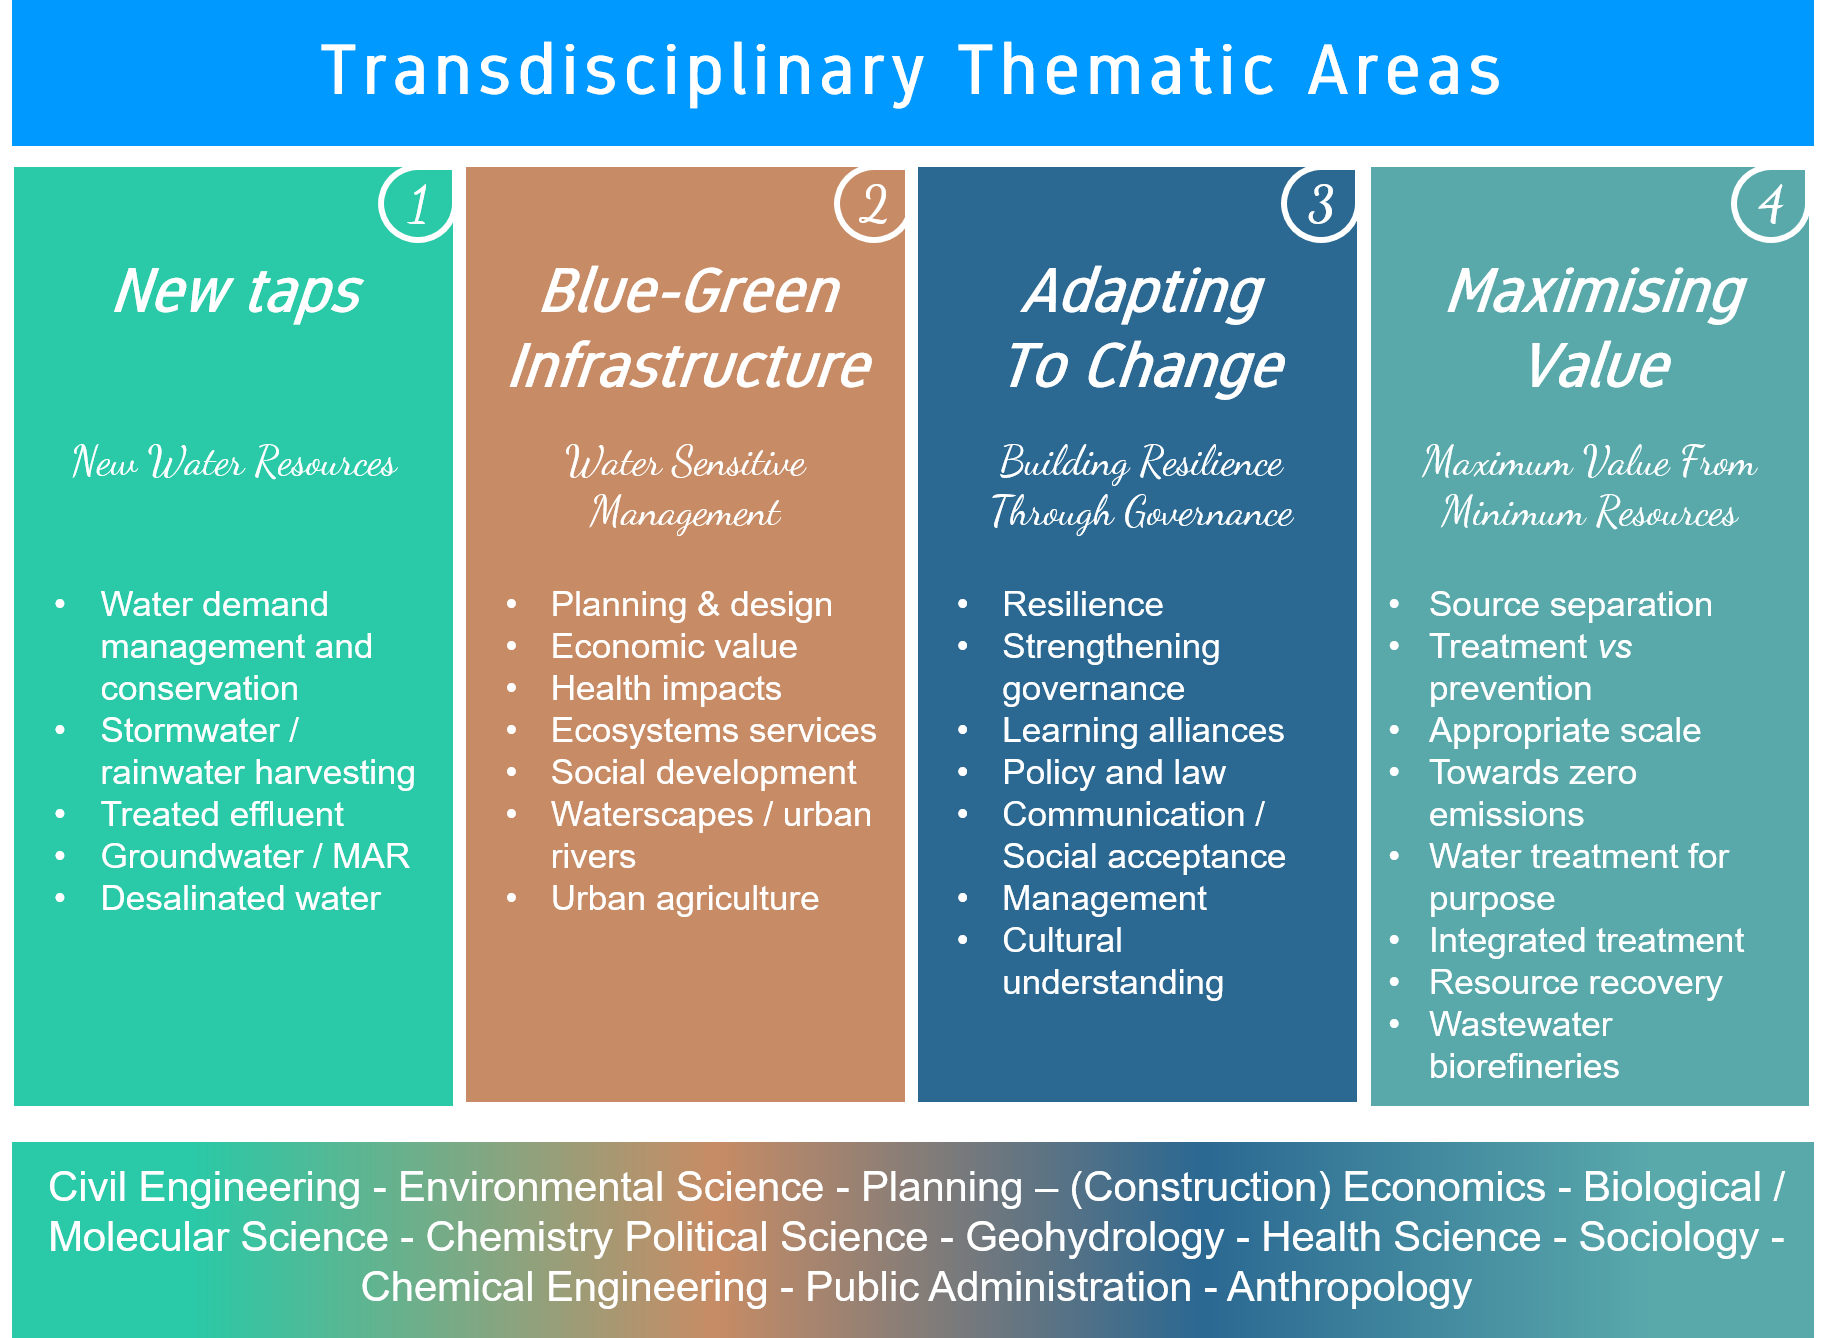 Future Water Transdisciplinary Themes